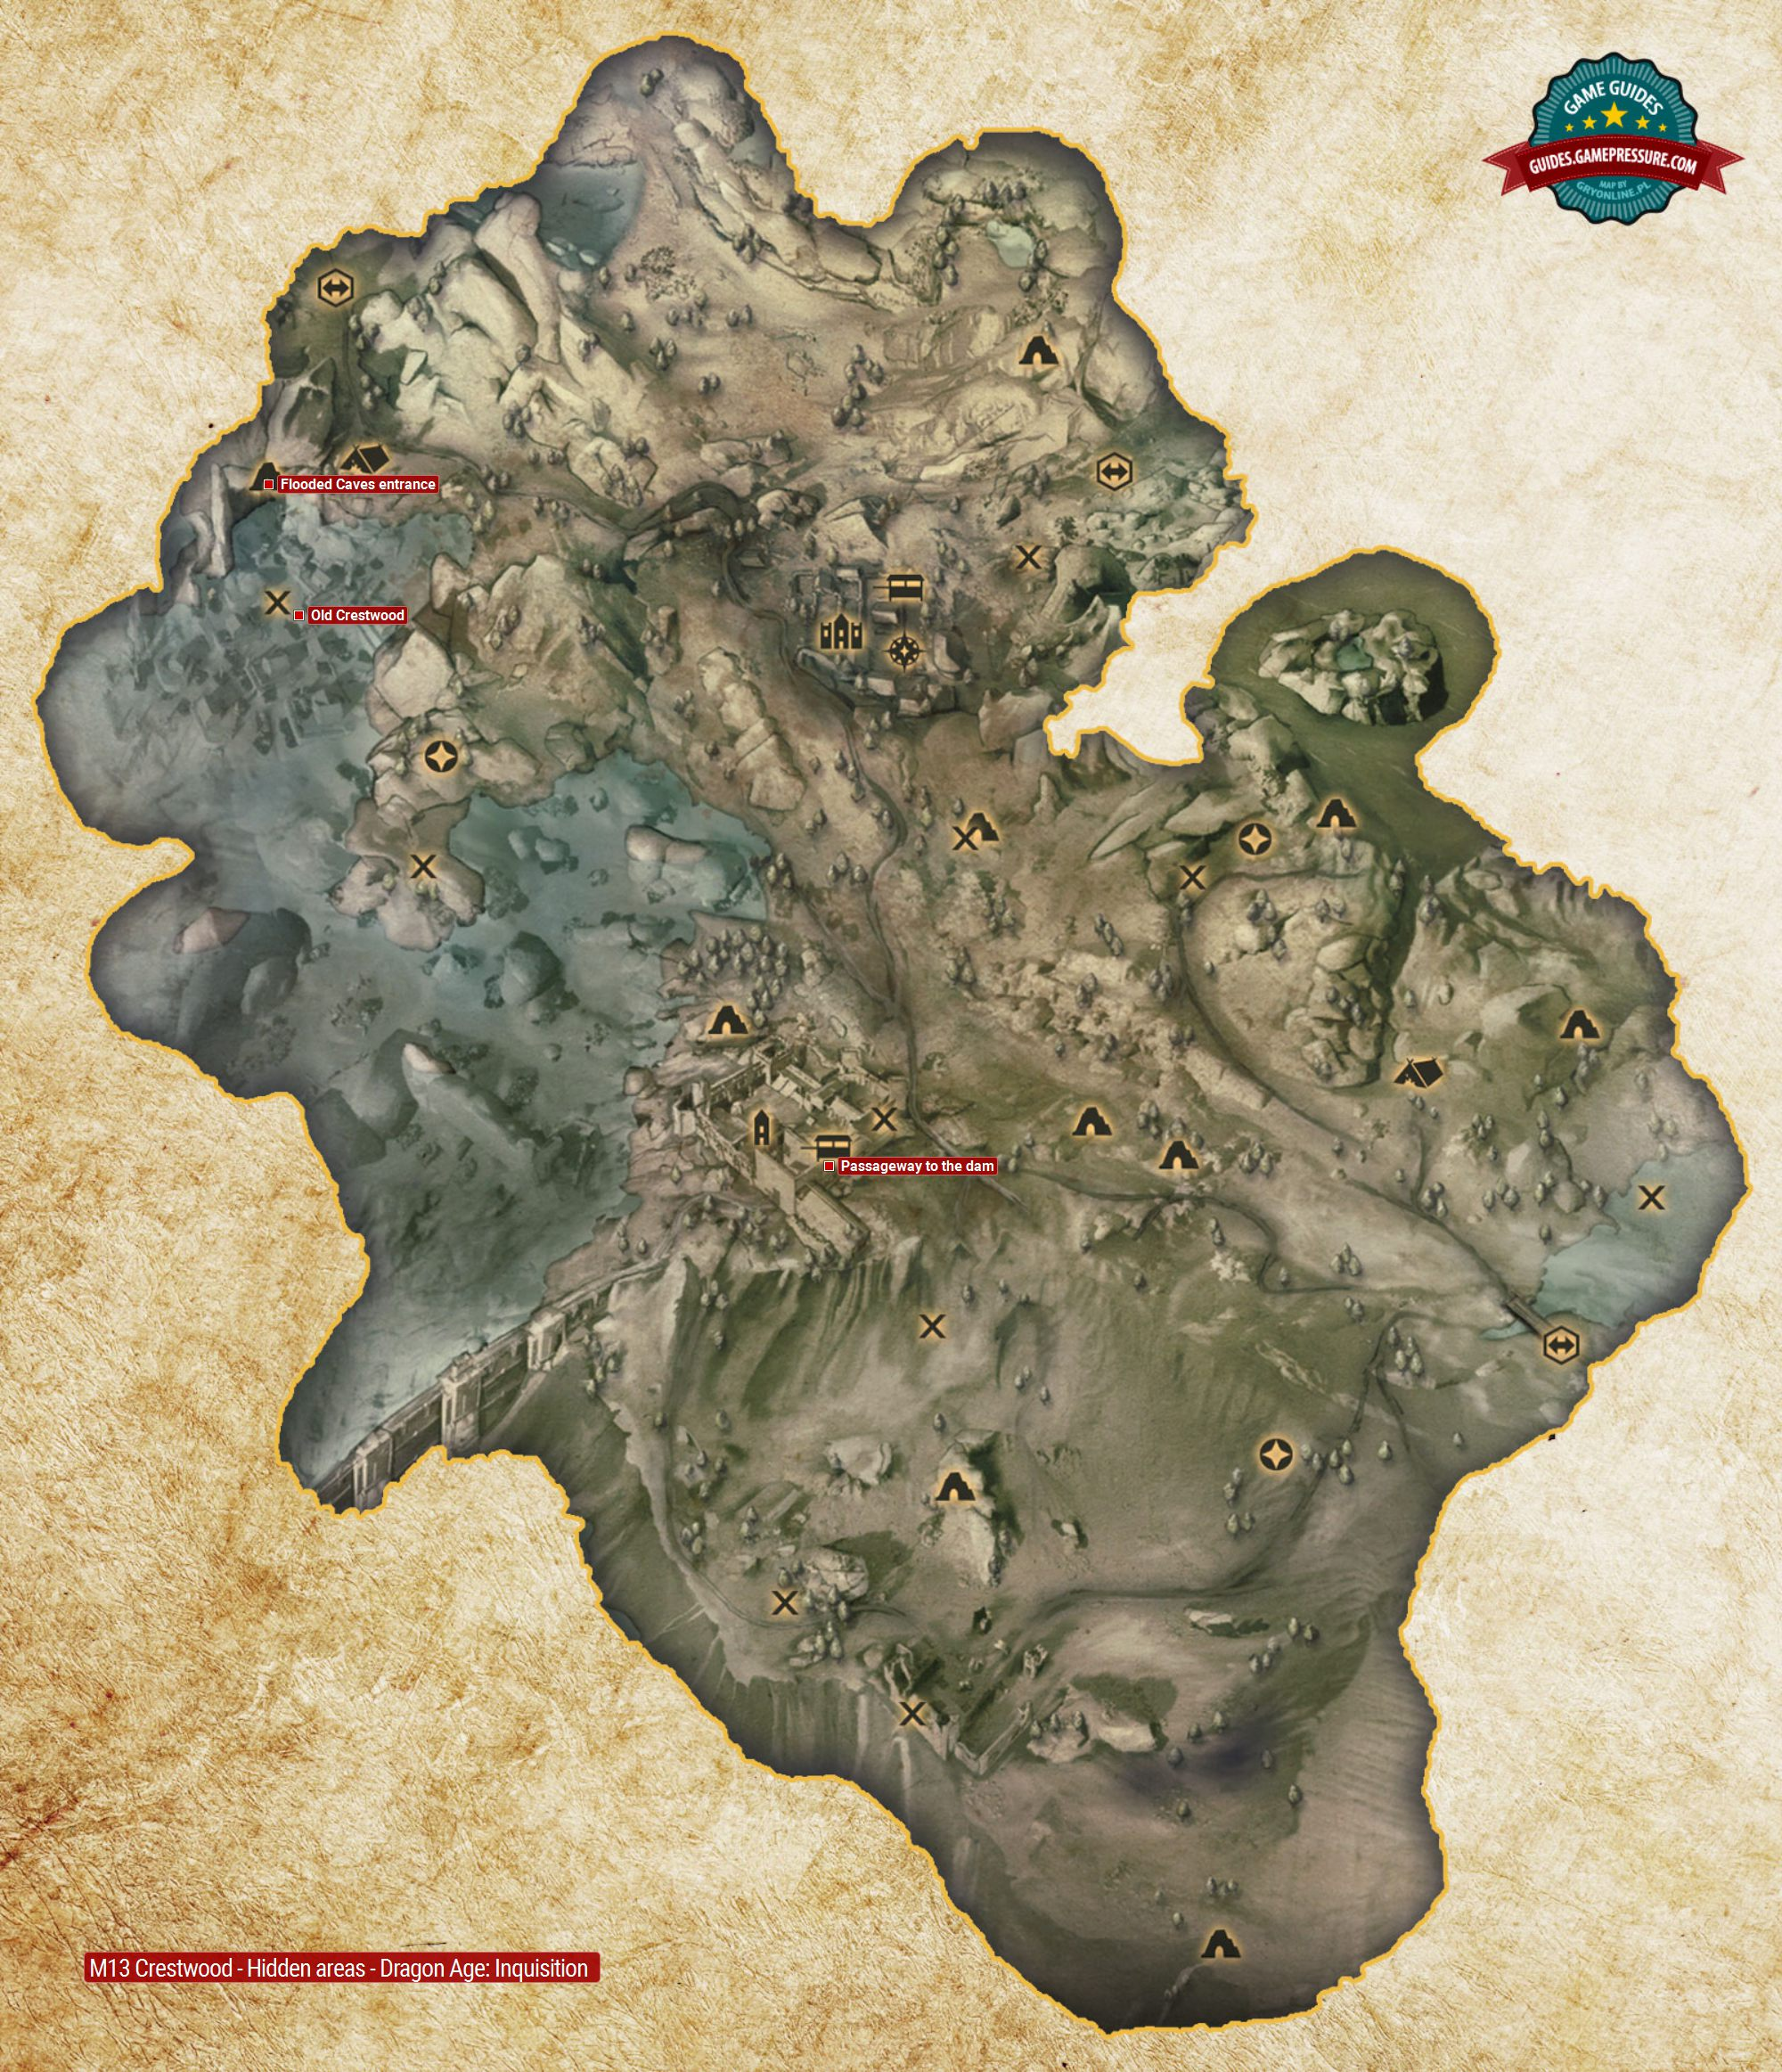 M13 Crestwood - Hidden areas - Dragon Age: Inquisition